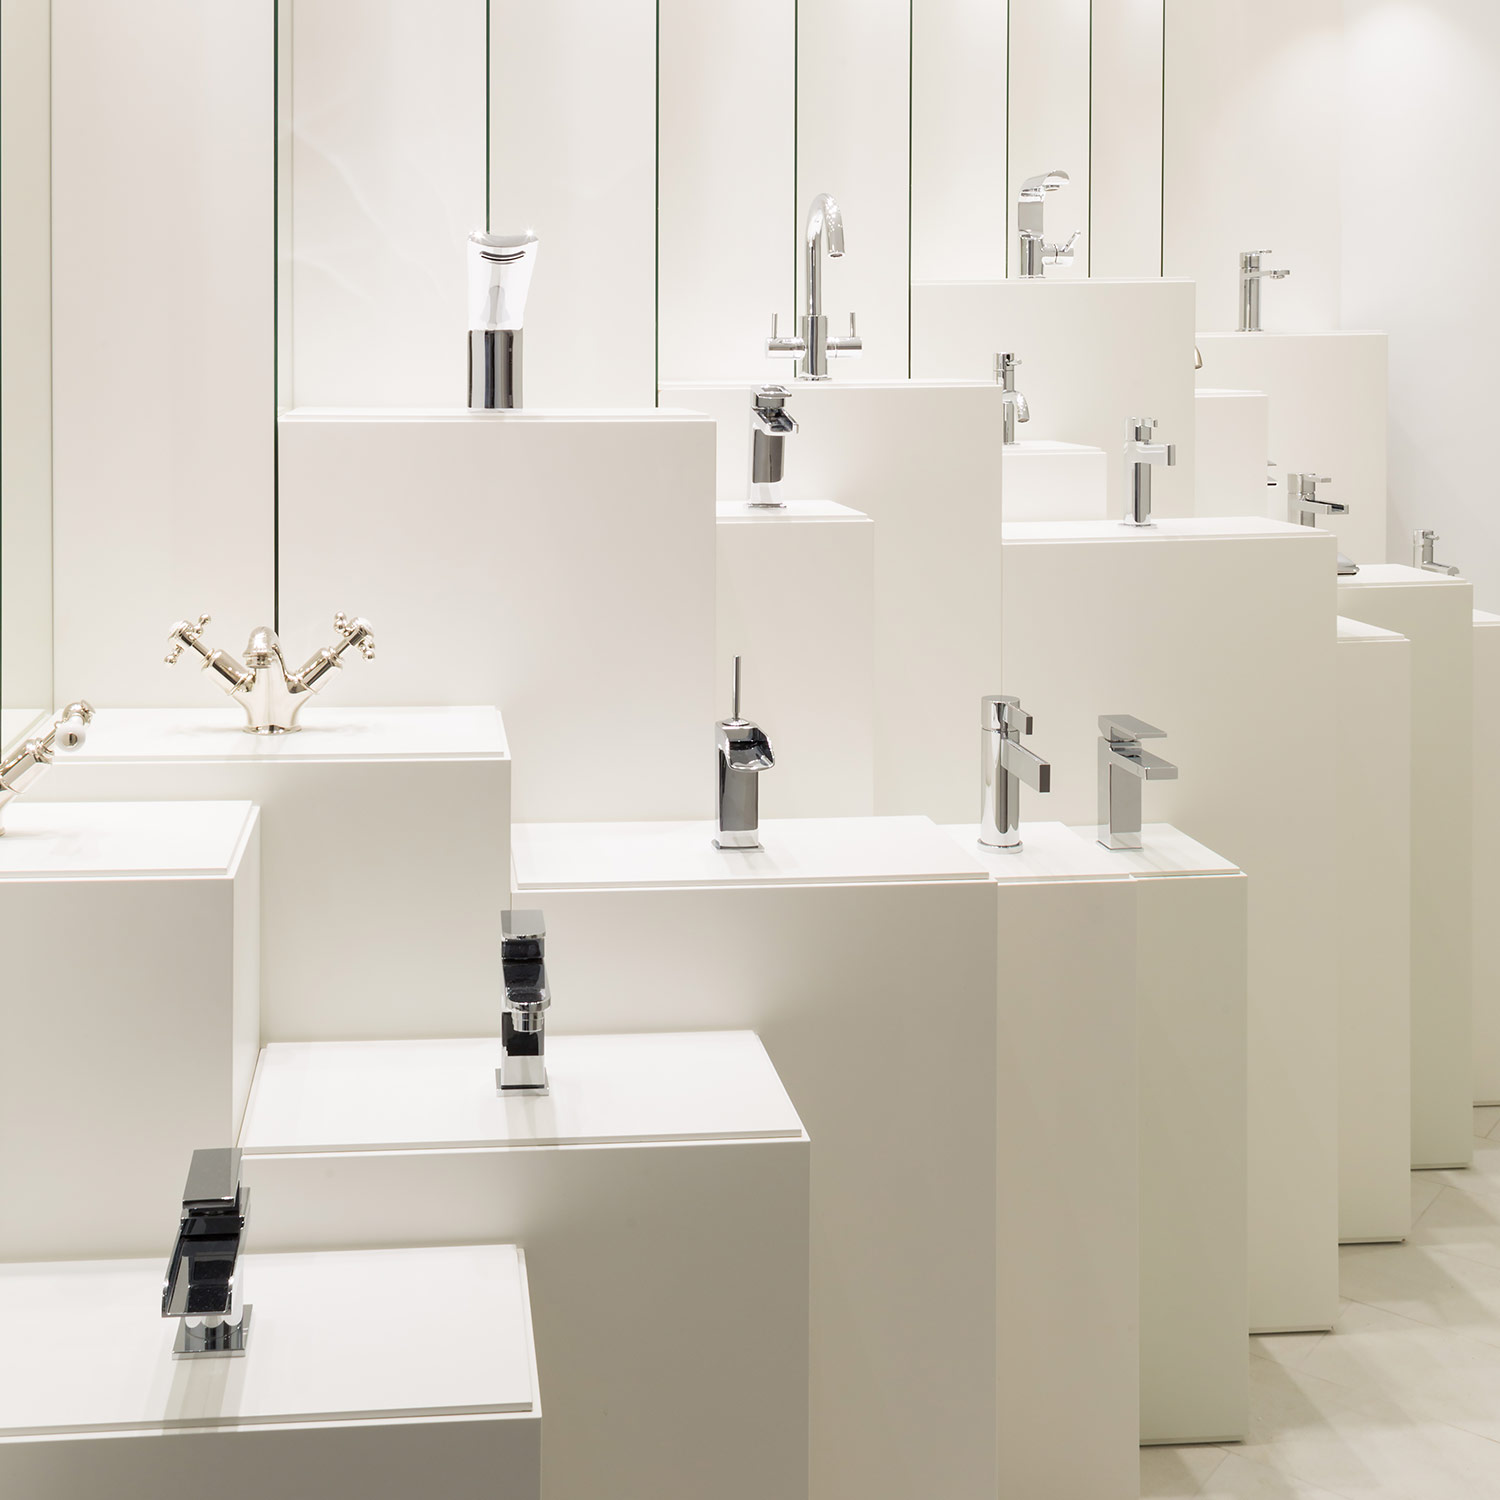 West One Bathrooms Kings Road Chelsea Showroom 5a